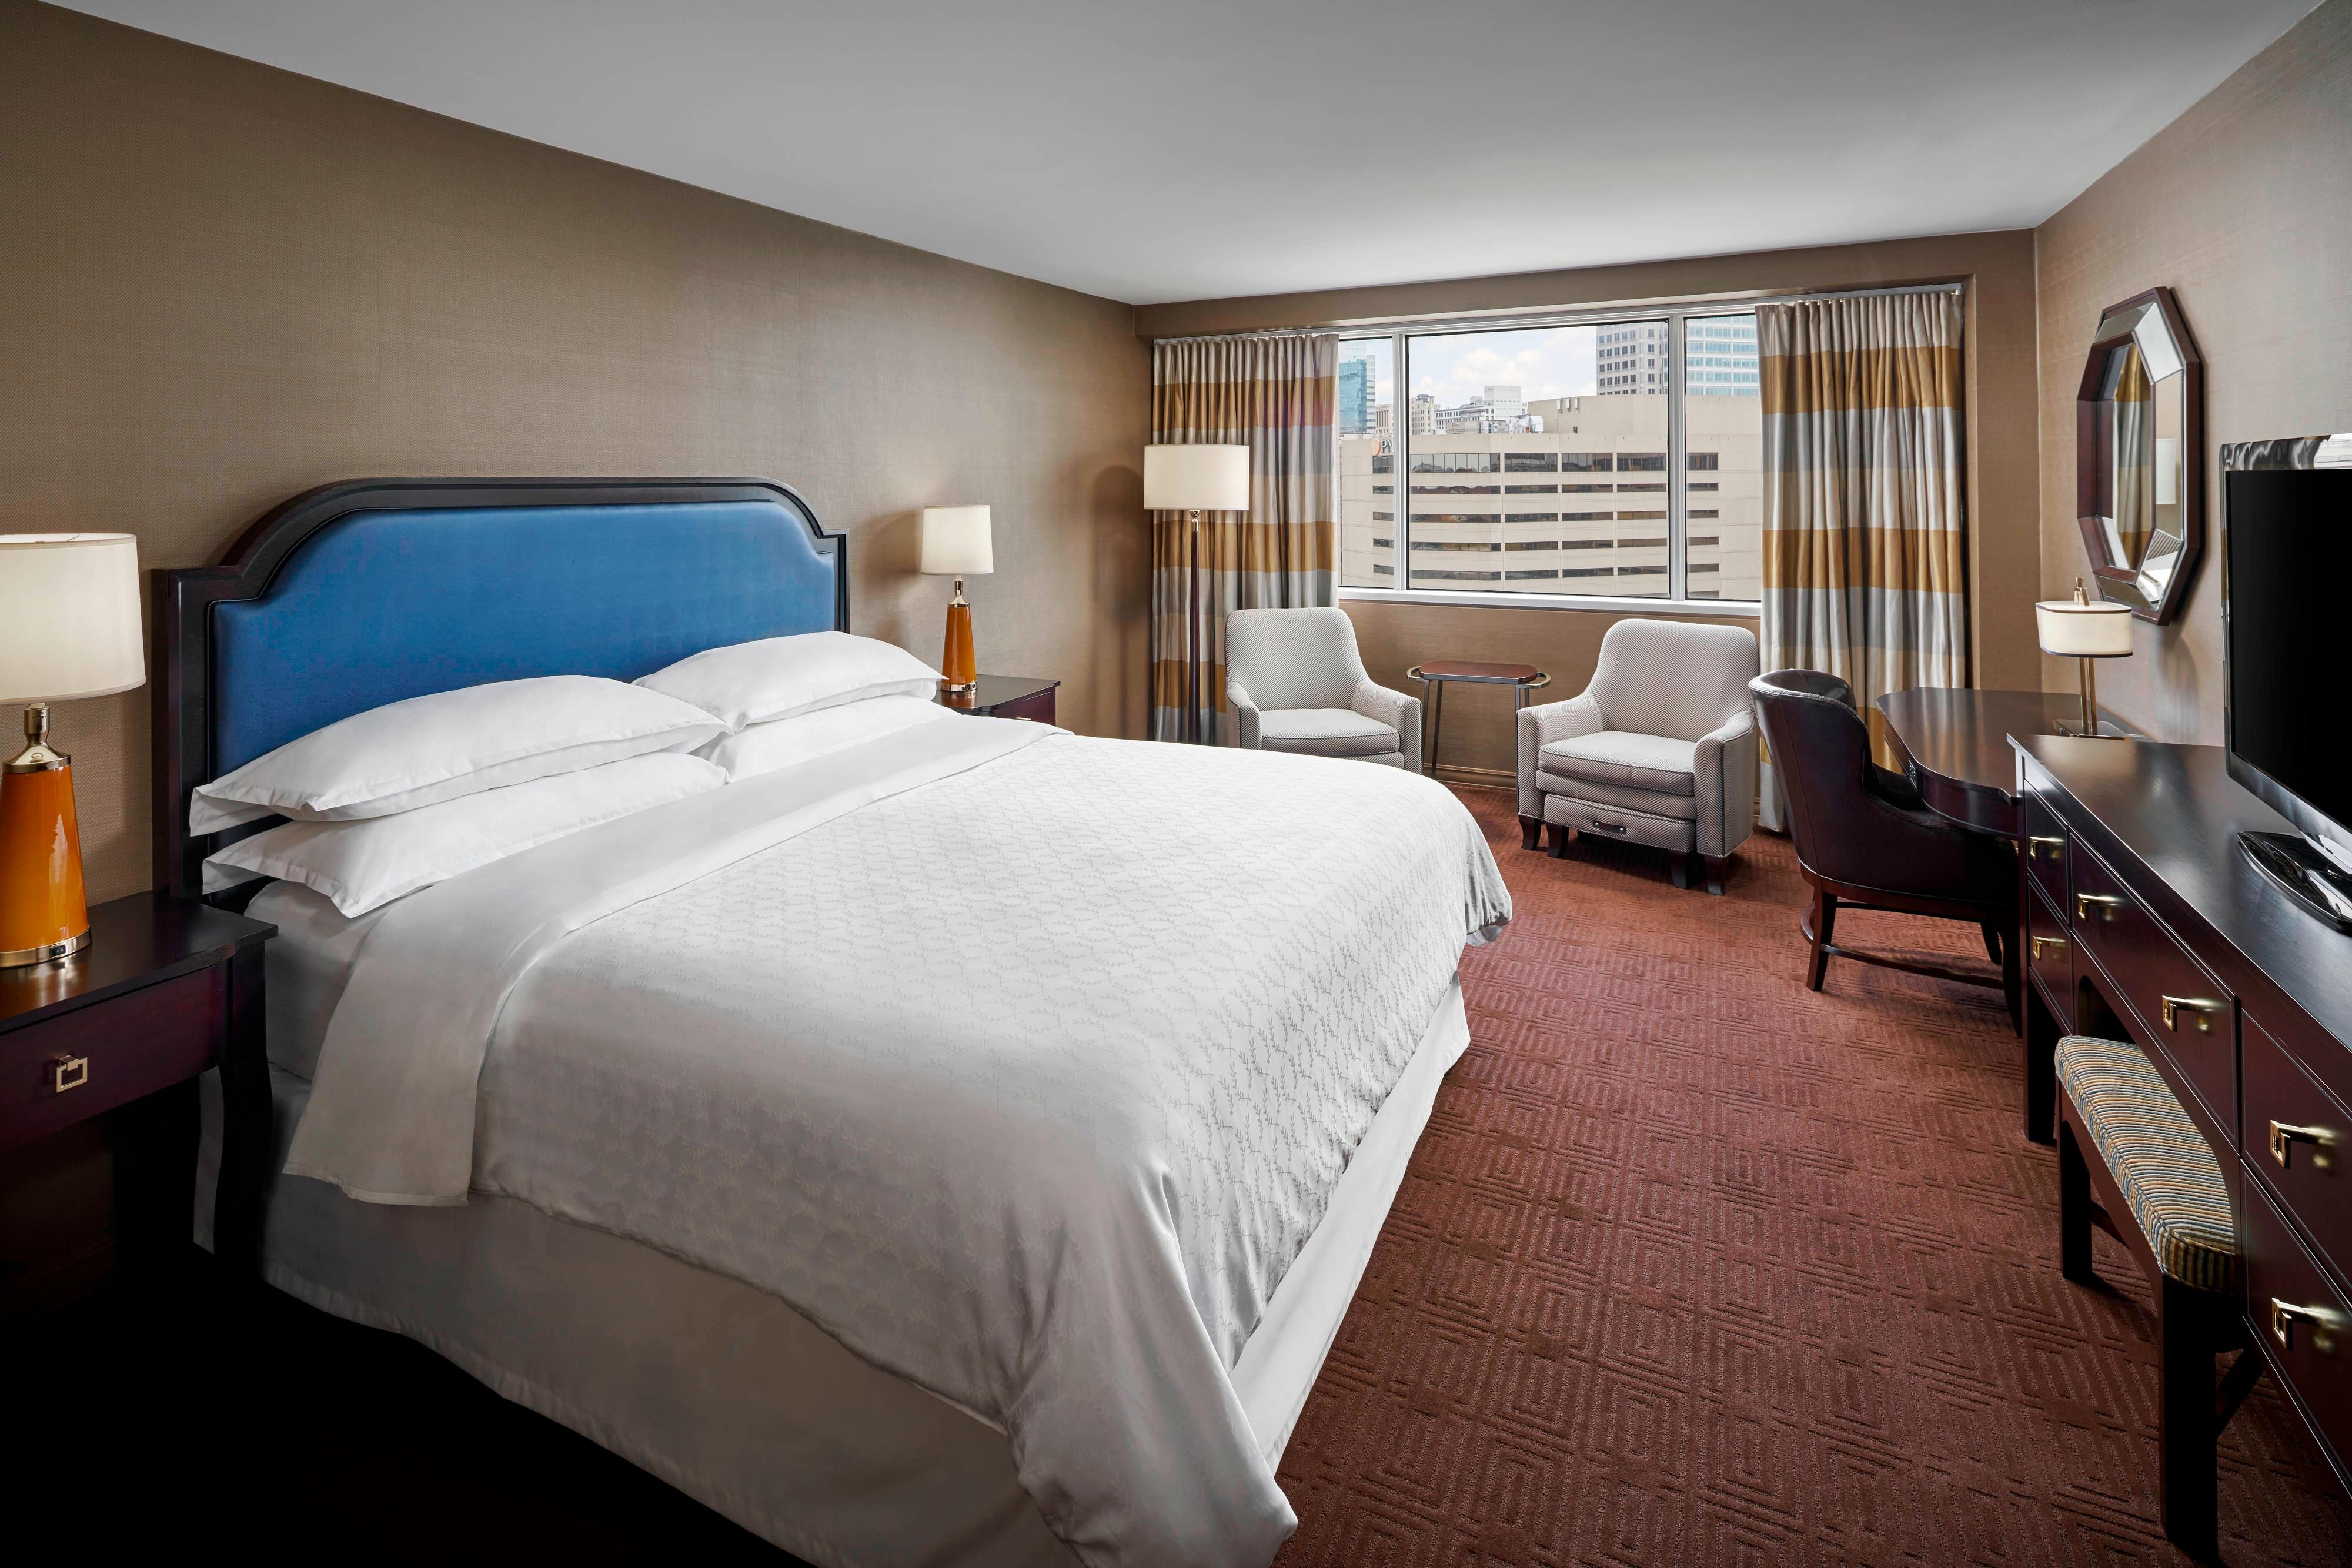 King City View Deluxe Guest Room